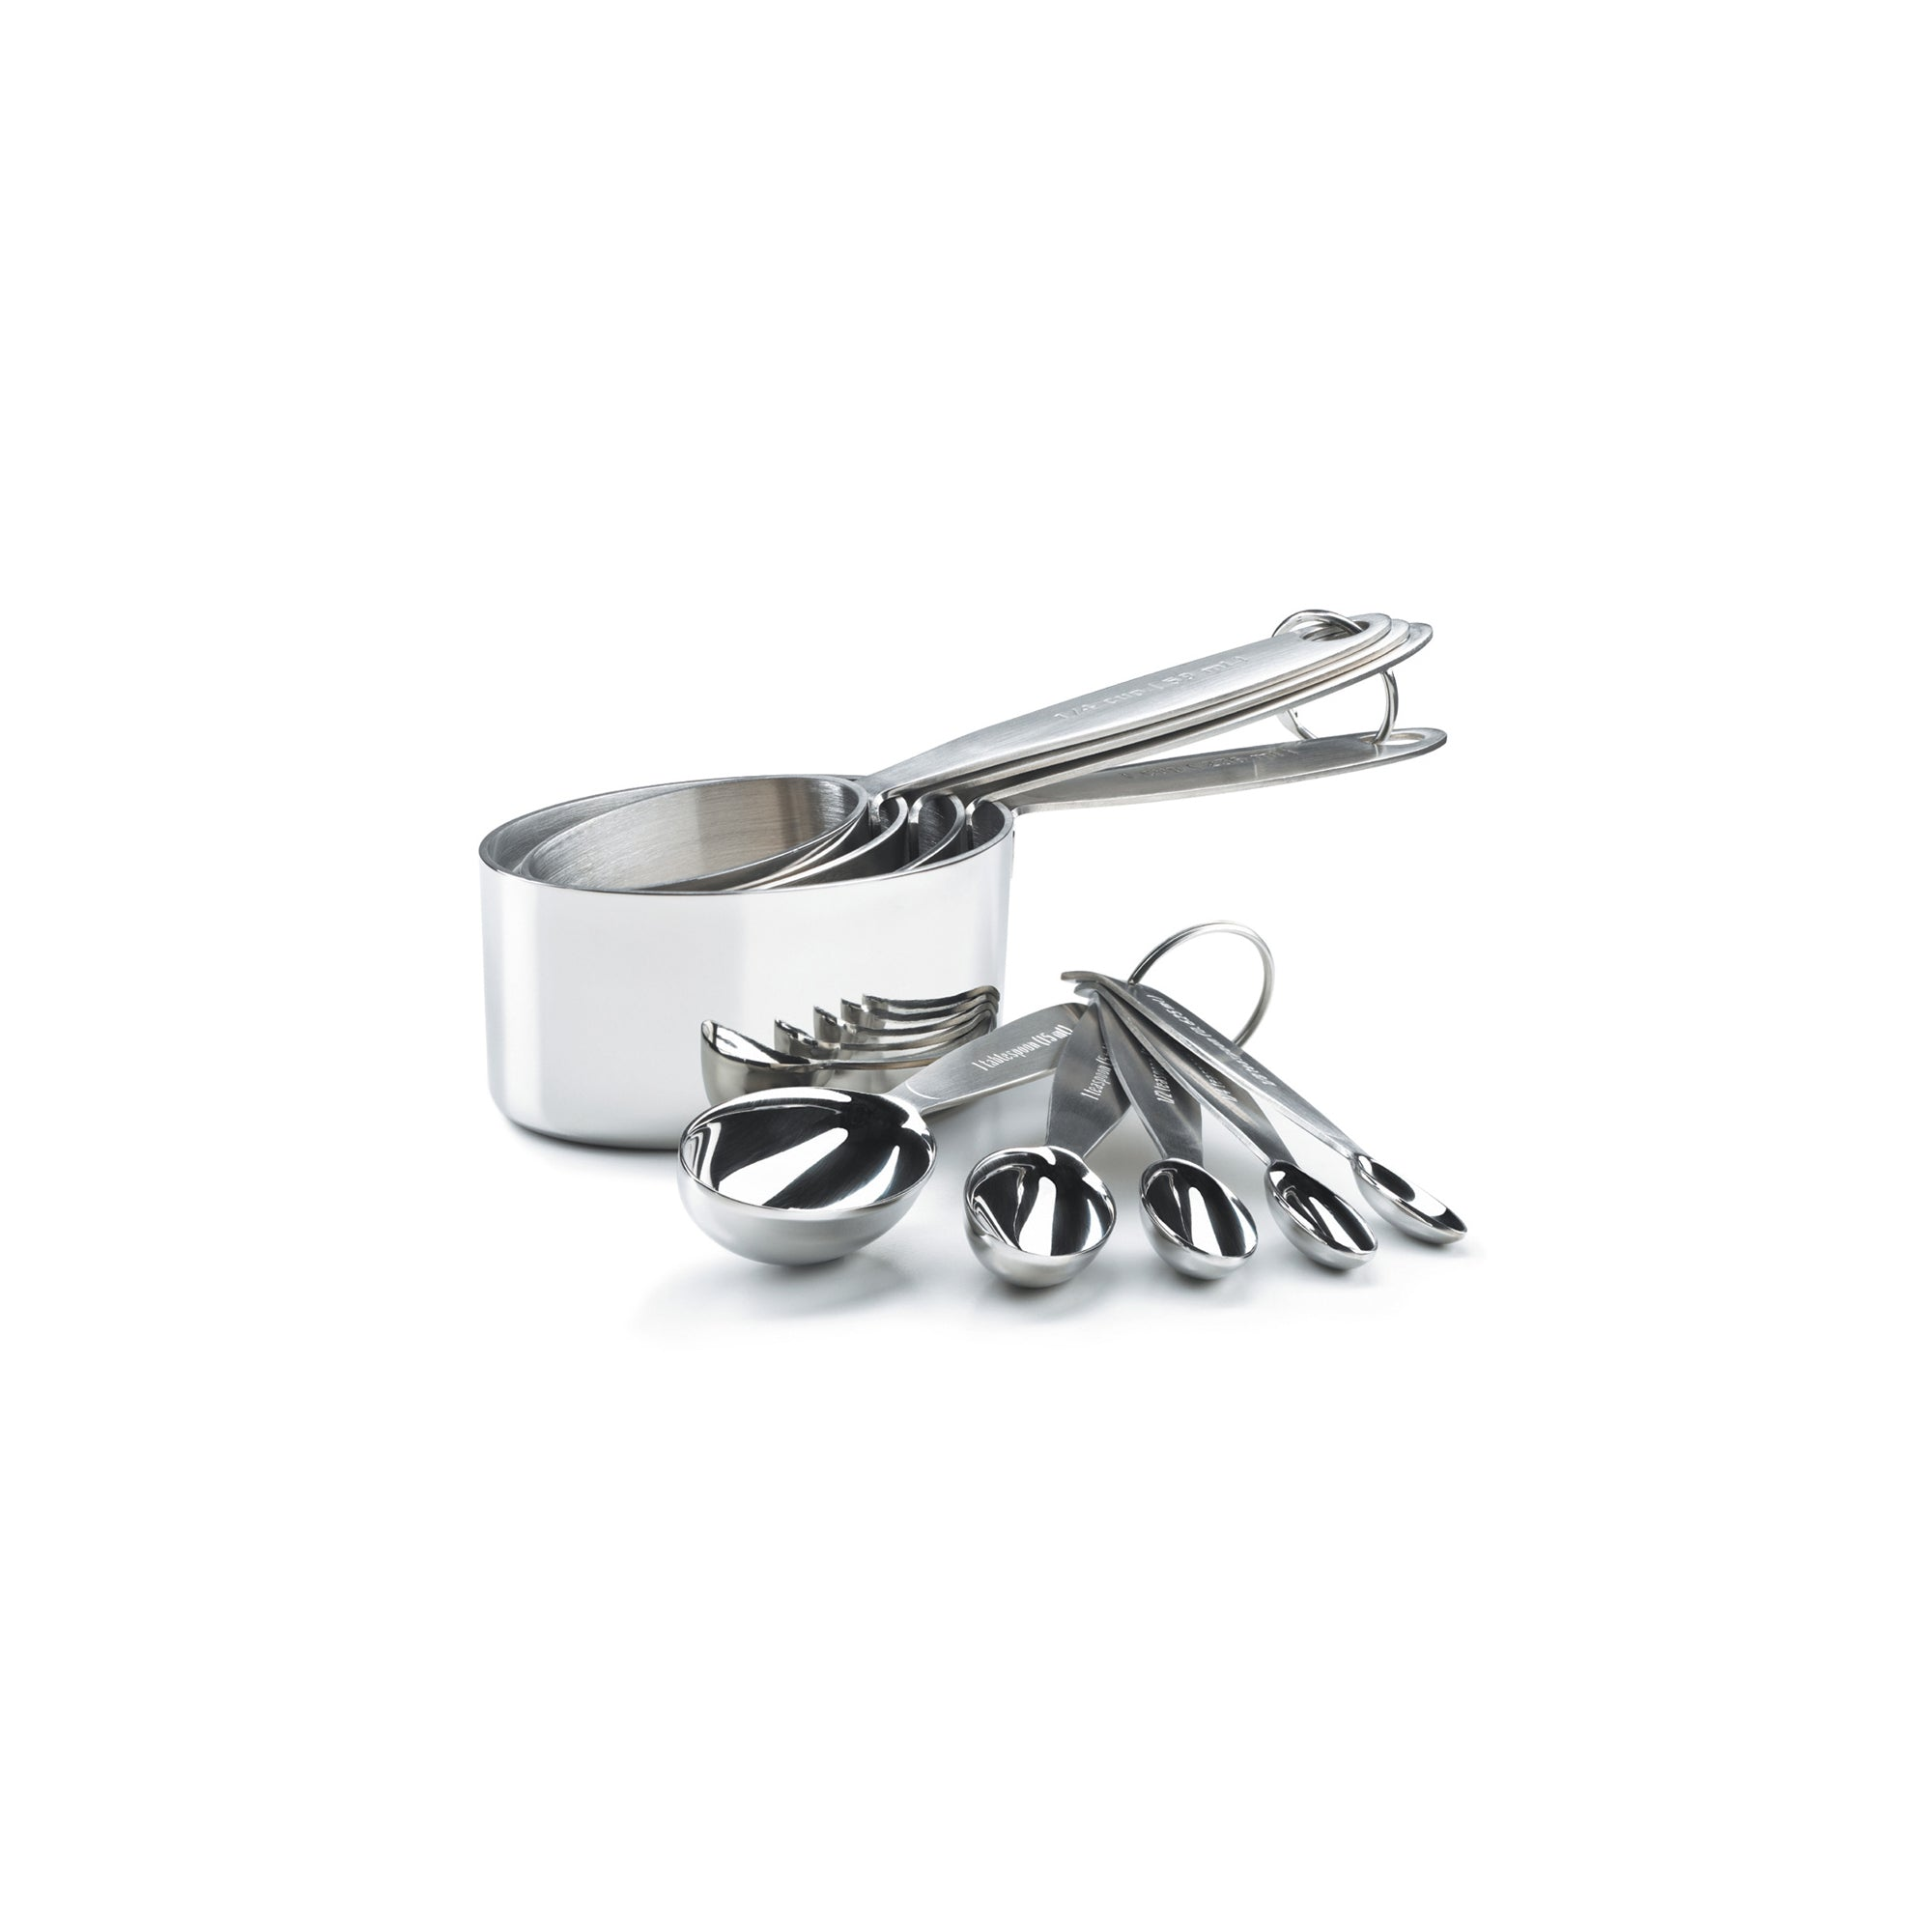 Stainless Steel Measuring Cups and Spoon Set